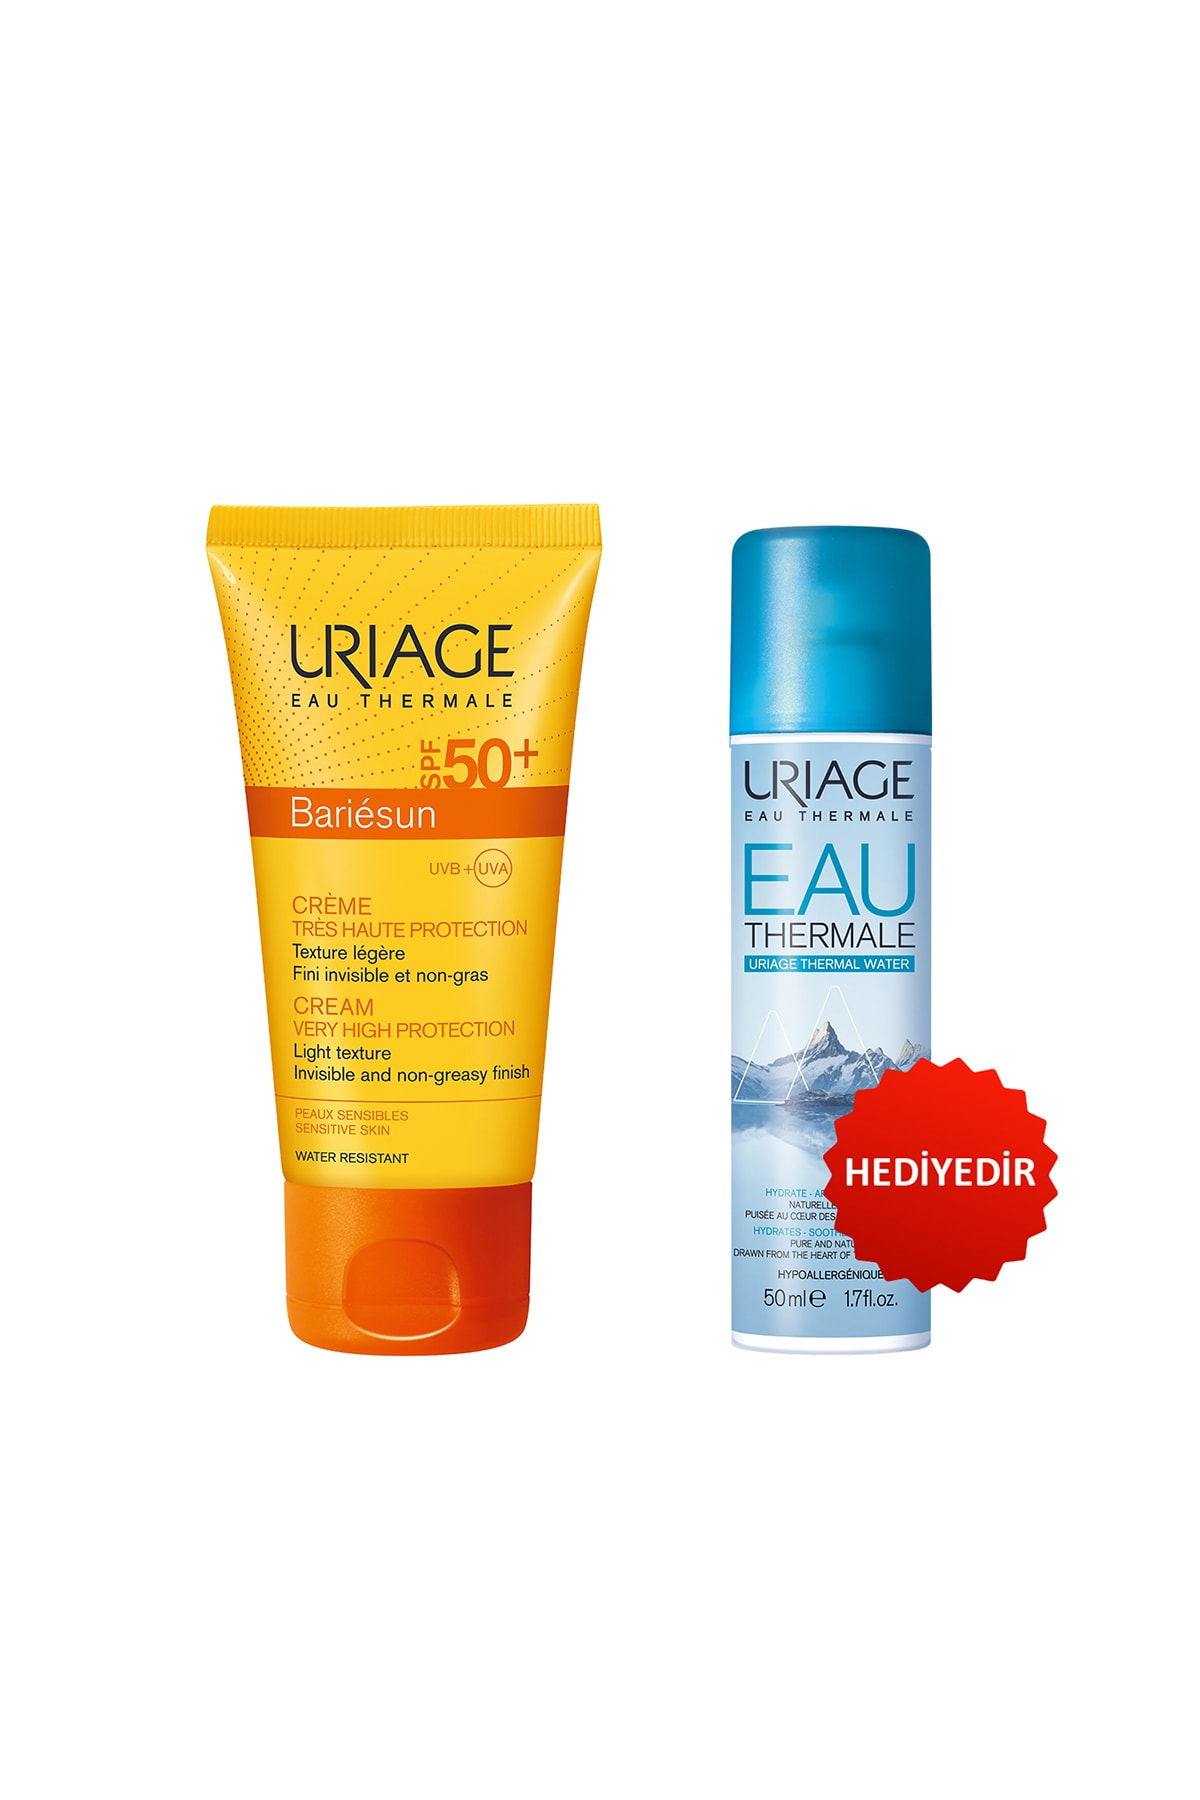 Uriage Bariésun Spf50 + Creme 50 ml & Thermale Water 50 ml + Eau Thermale D Uriage Sp 50 ml